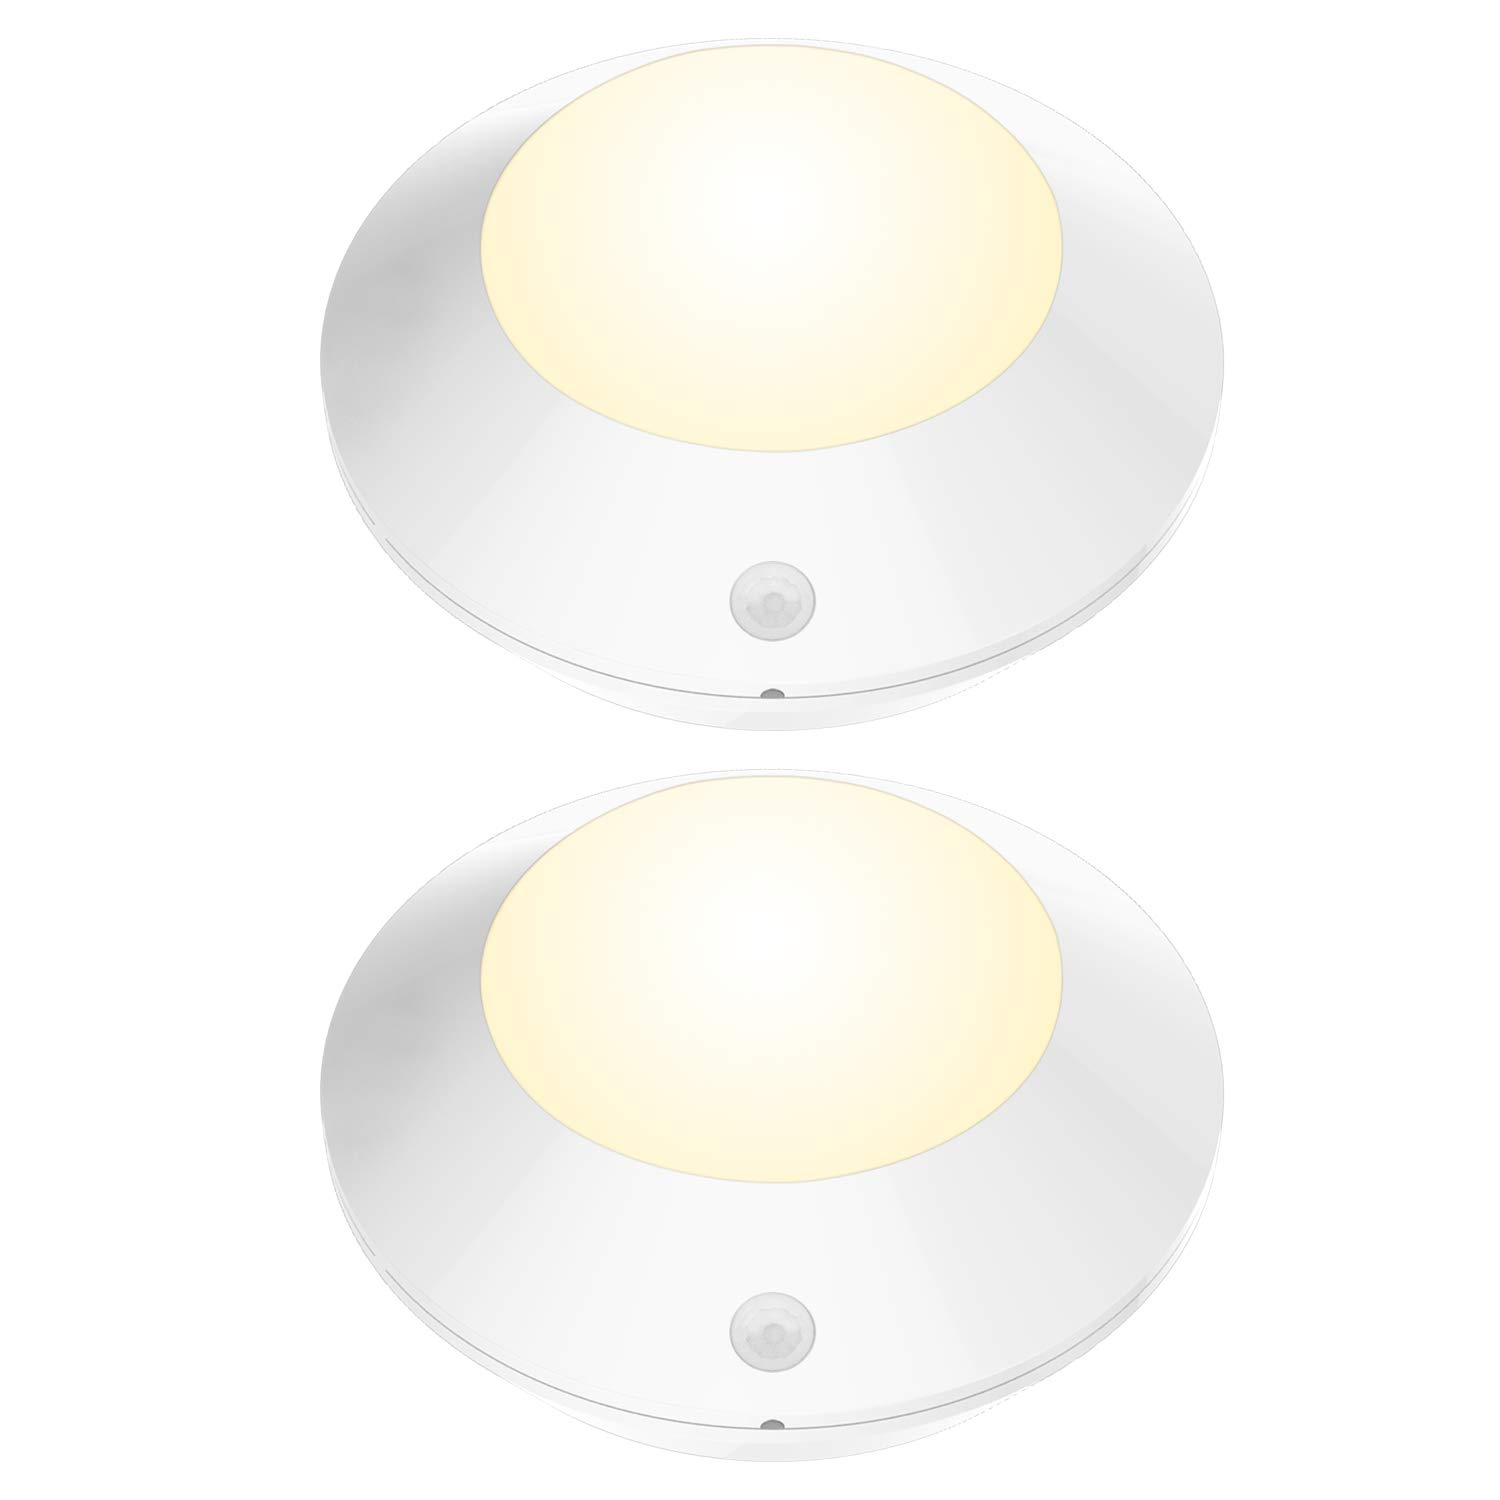 BIGLIGHT Wireless Battery Operated Bright LED Motion Sensor Shower Light, Cordless Motion Lights for Hallway Ceiling Closet Pantry Entrance Hall Corridor Shed, 5 Inch, 250 Lumens, Warm White - 2 Pack